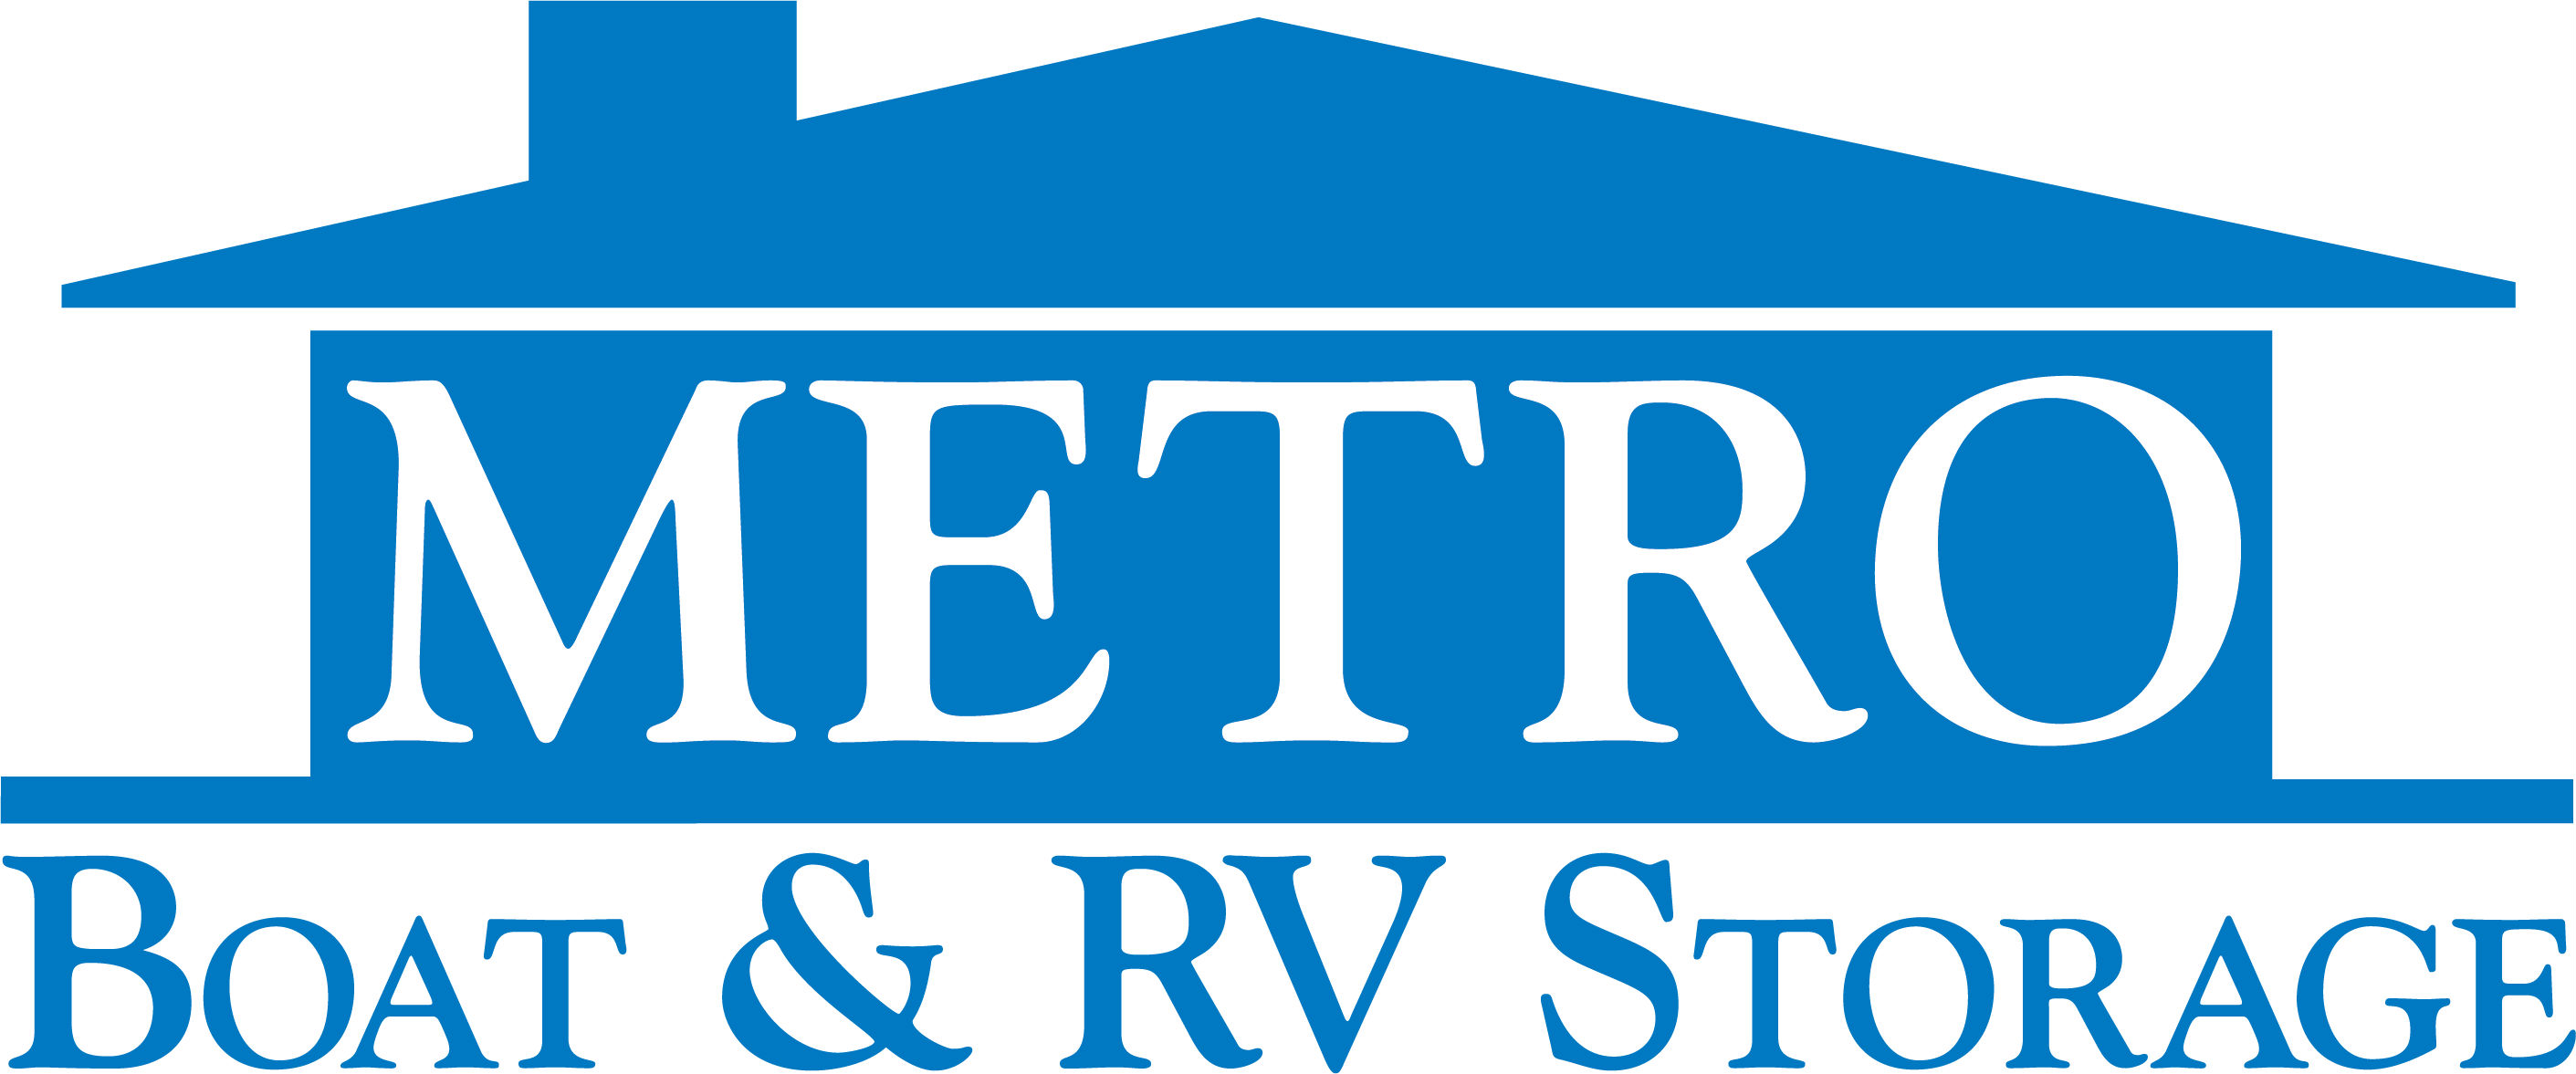 Metro Boat & RV Storage